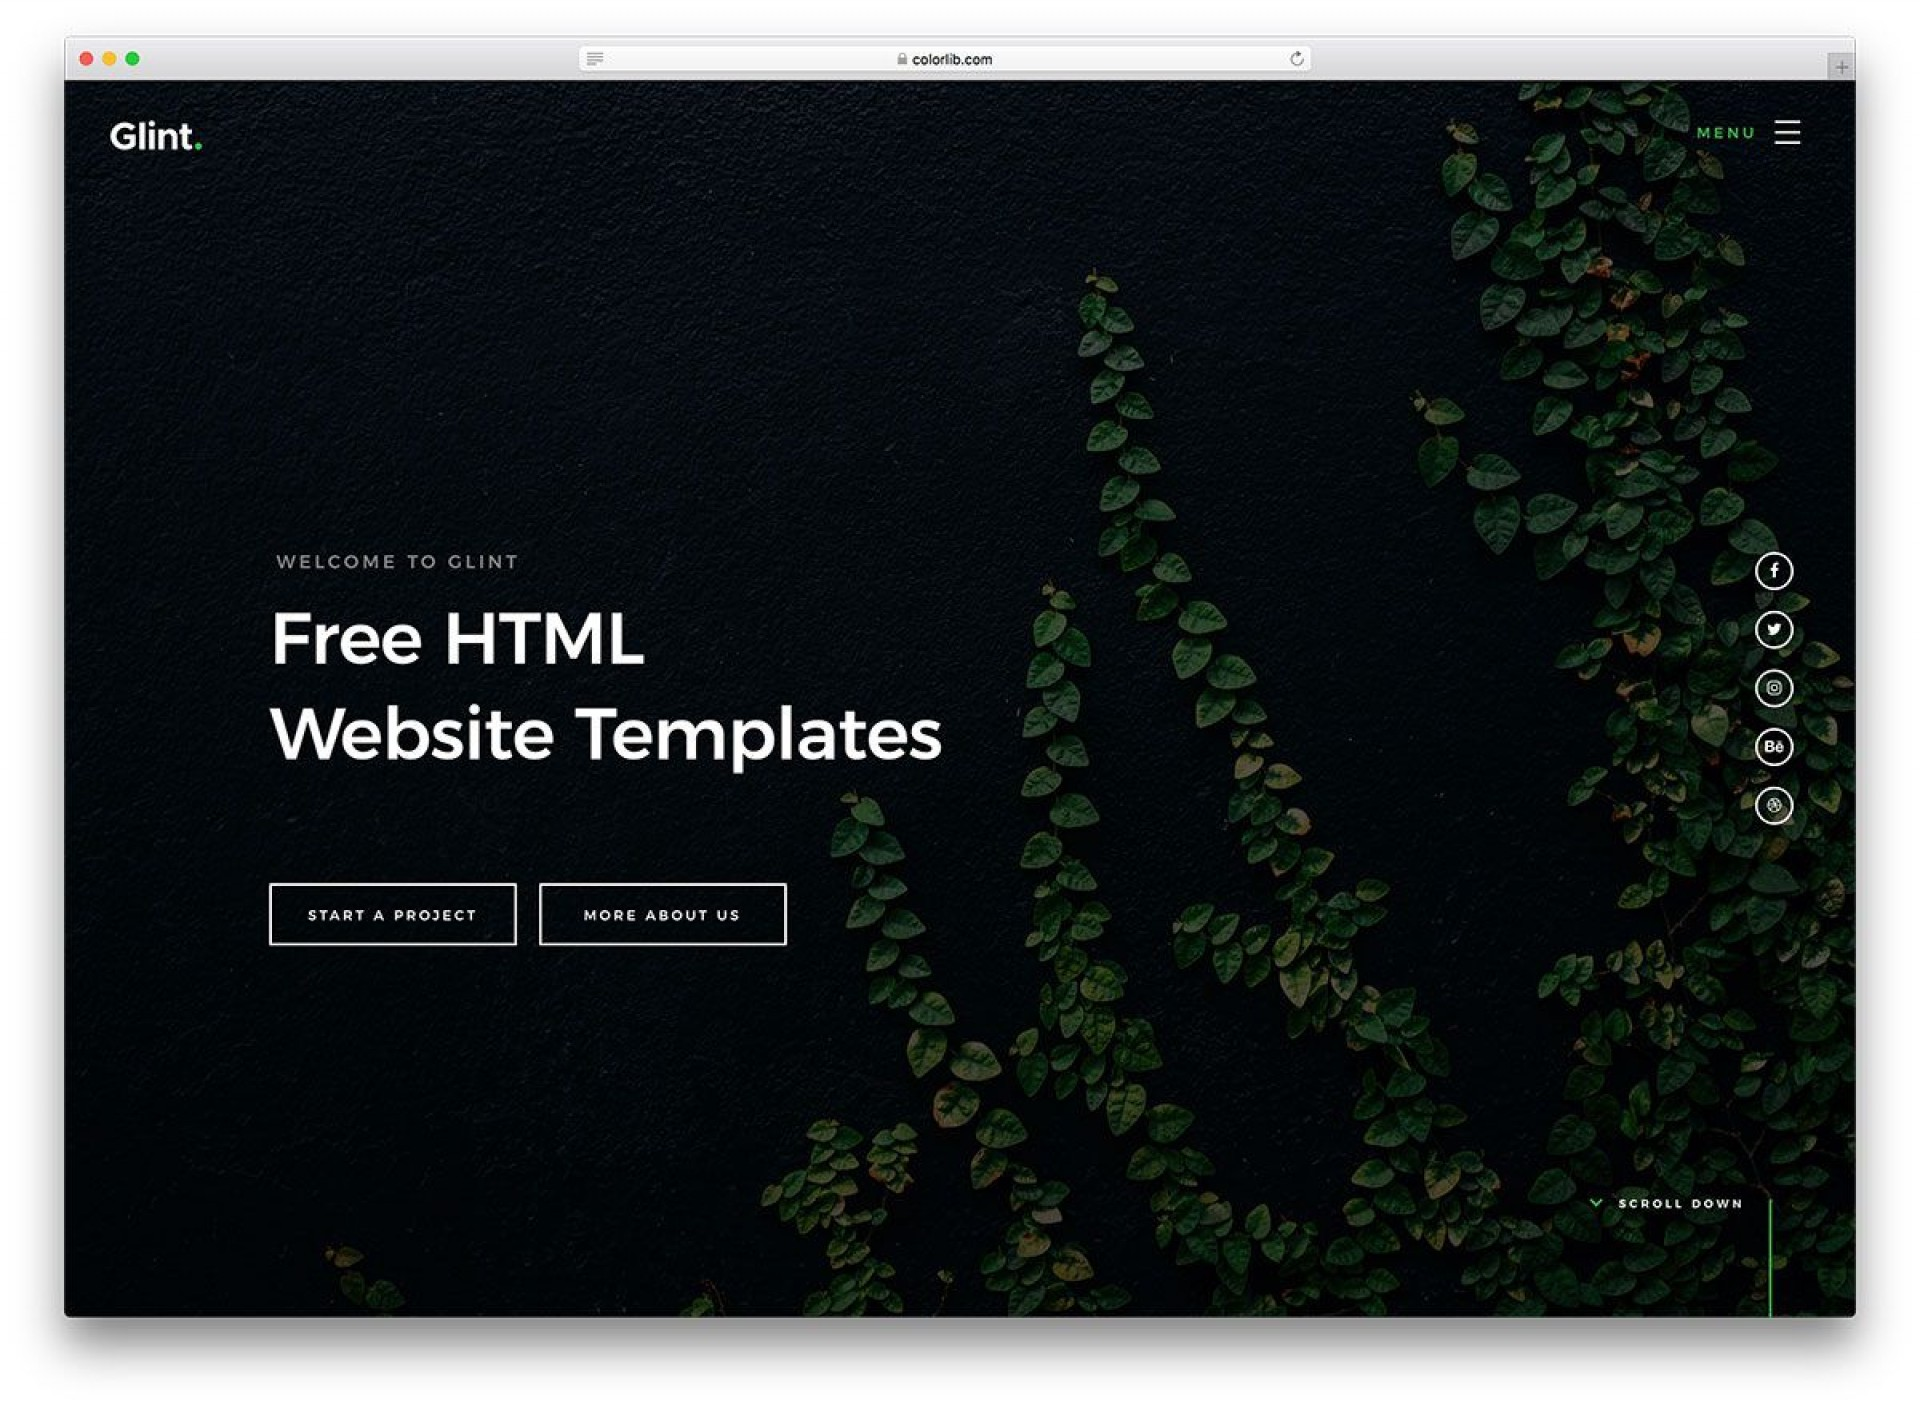 005 Stirring Download Free Website Template Image  Templates Dynamic In Php With Login Page Bootstrap 41920